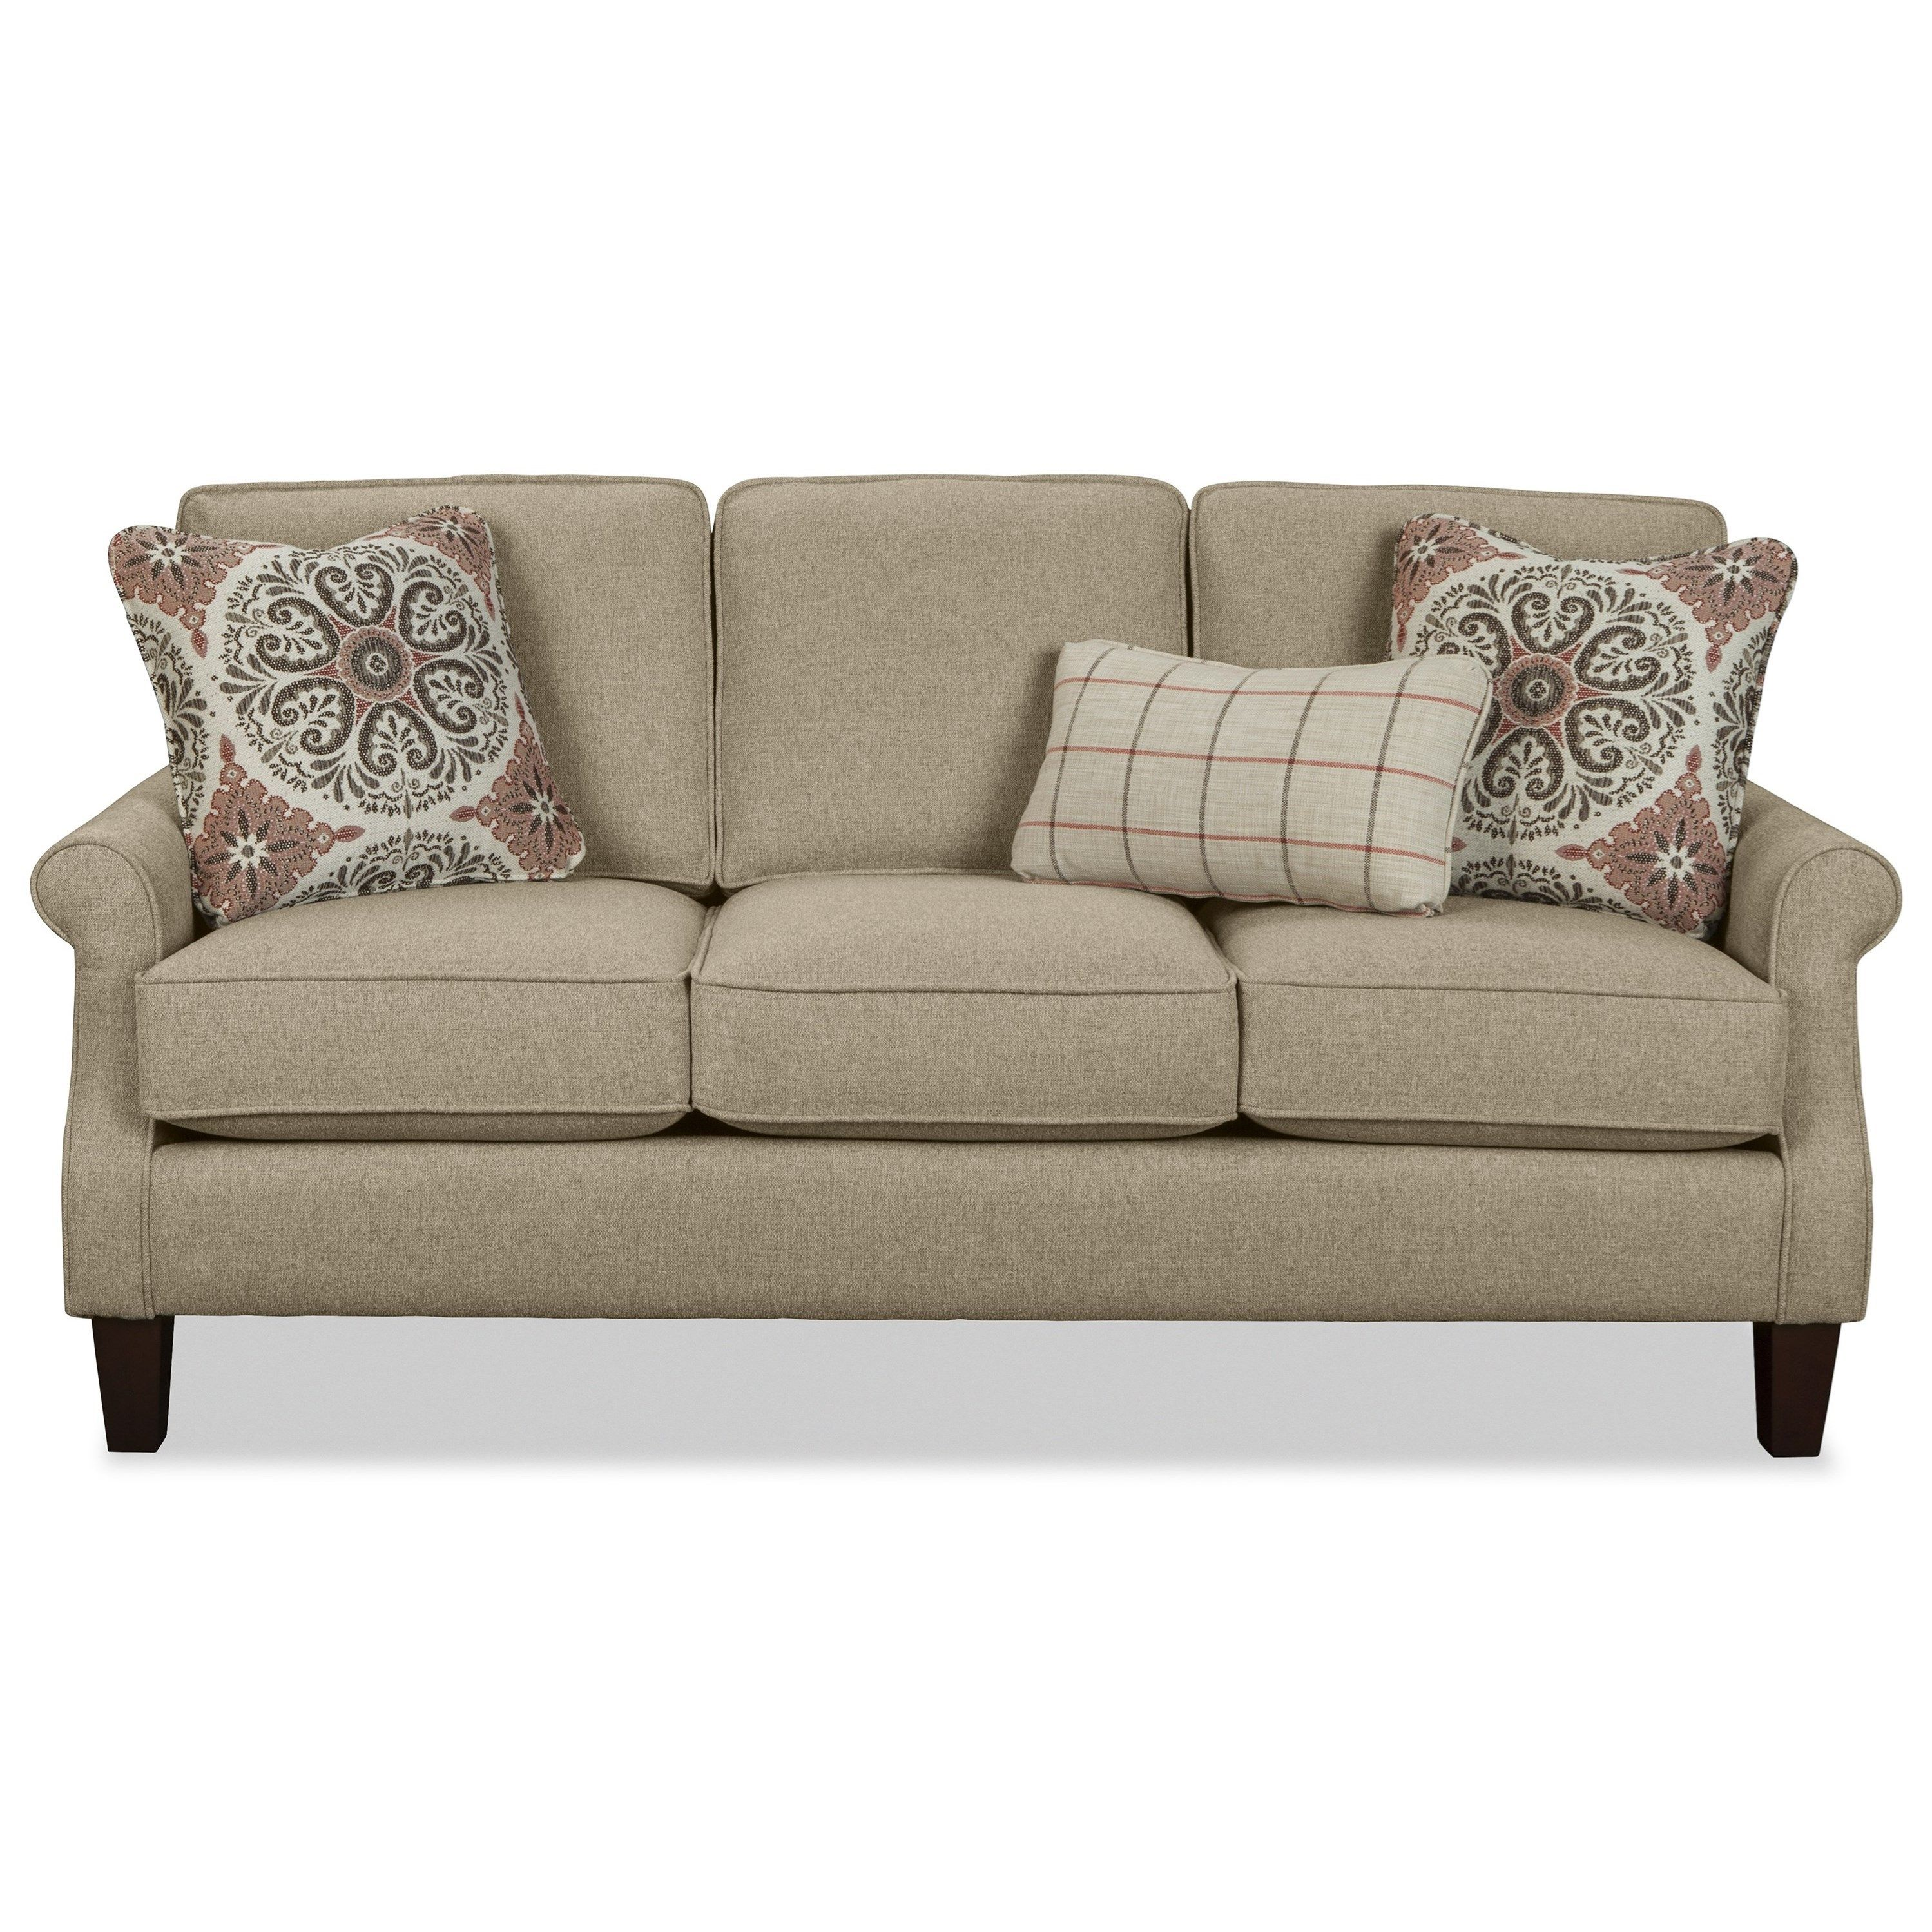 Catherine Apartment Size Sofa With Rolled Arms By